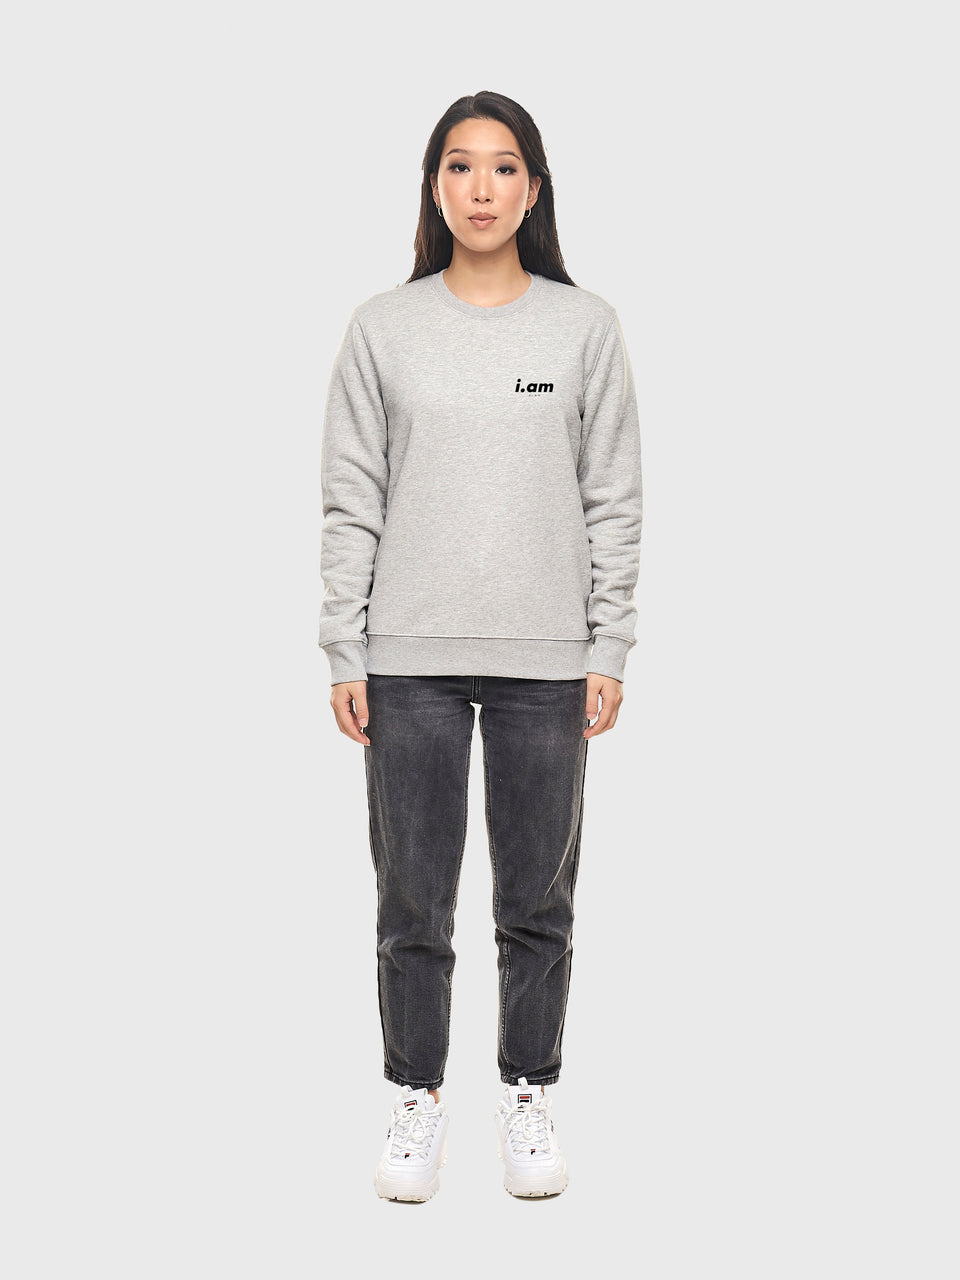 Power - Grey - Unisex sweatshirt